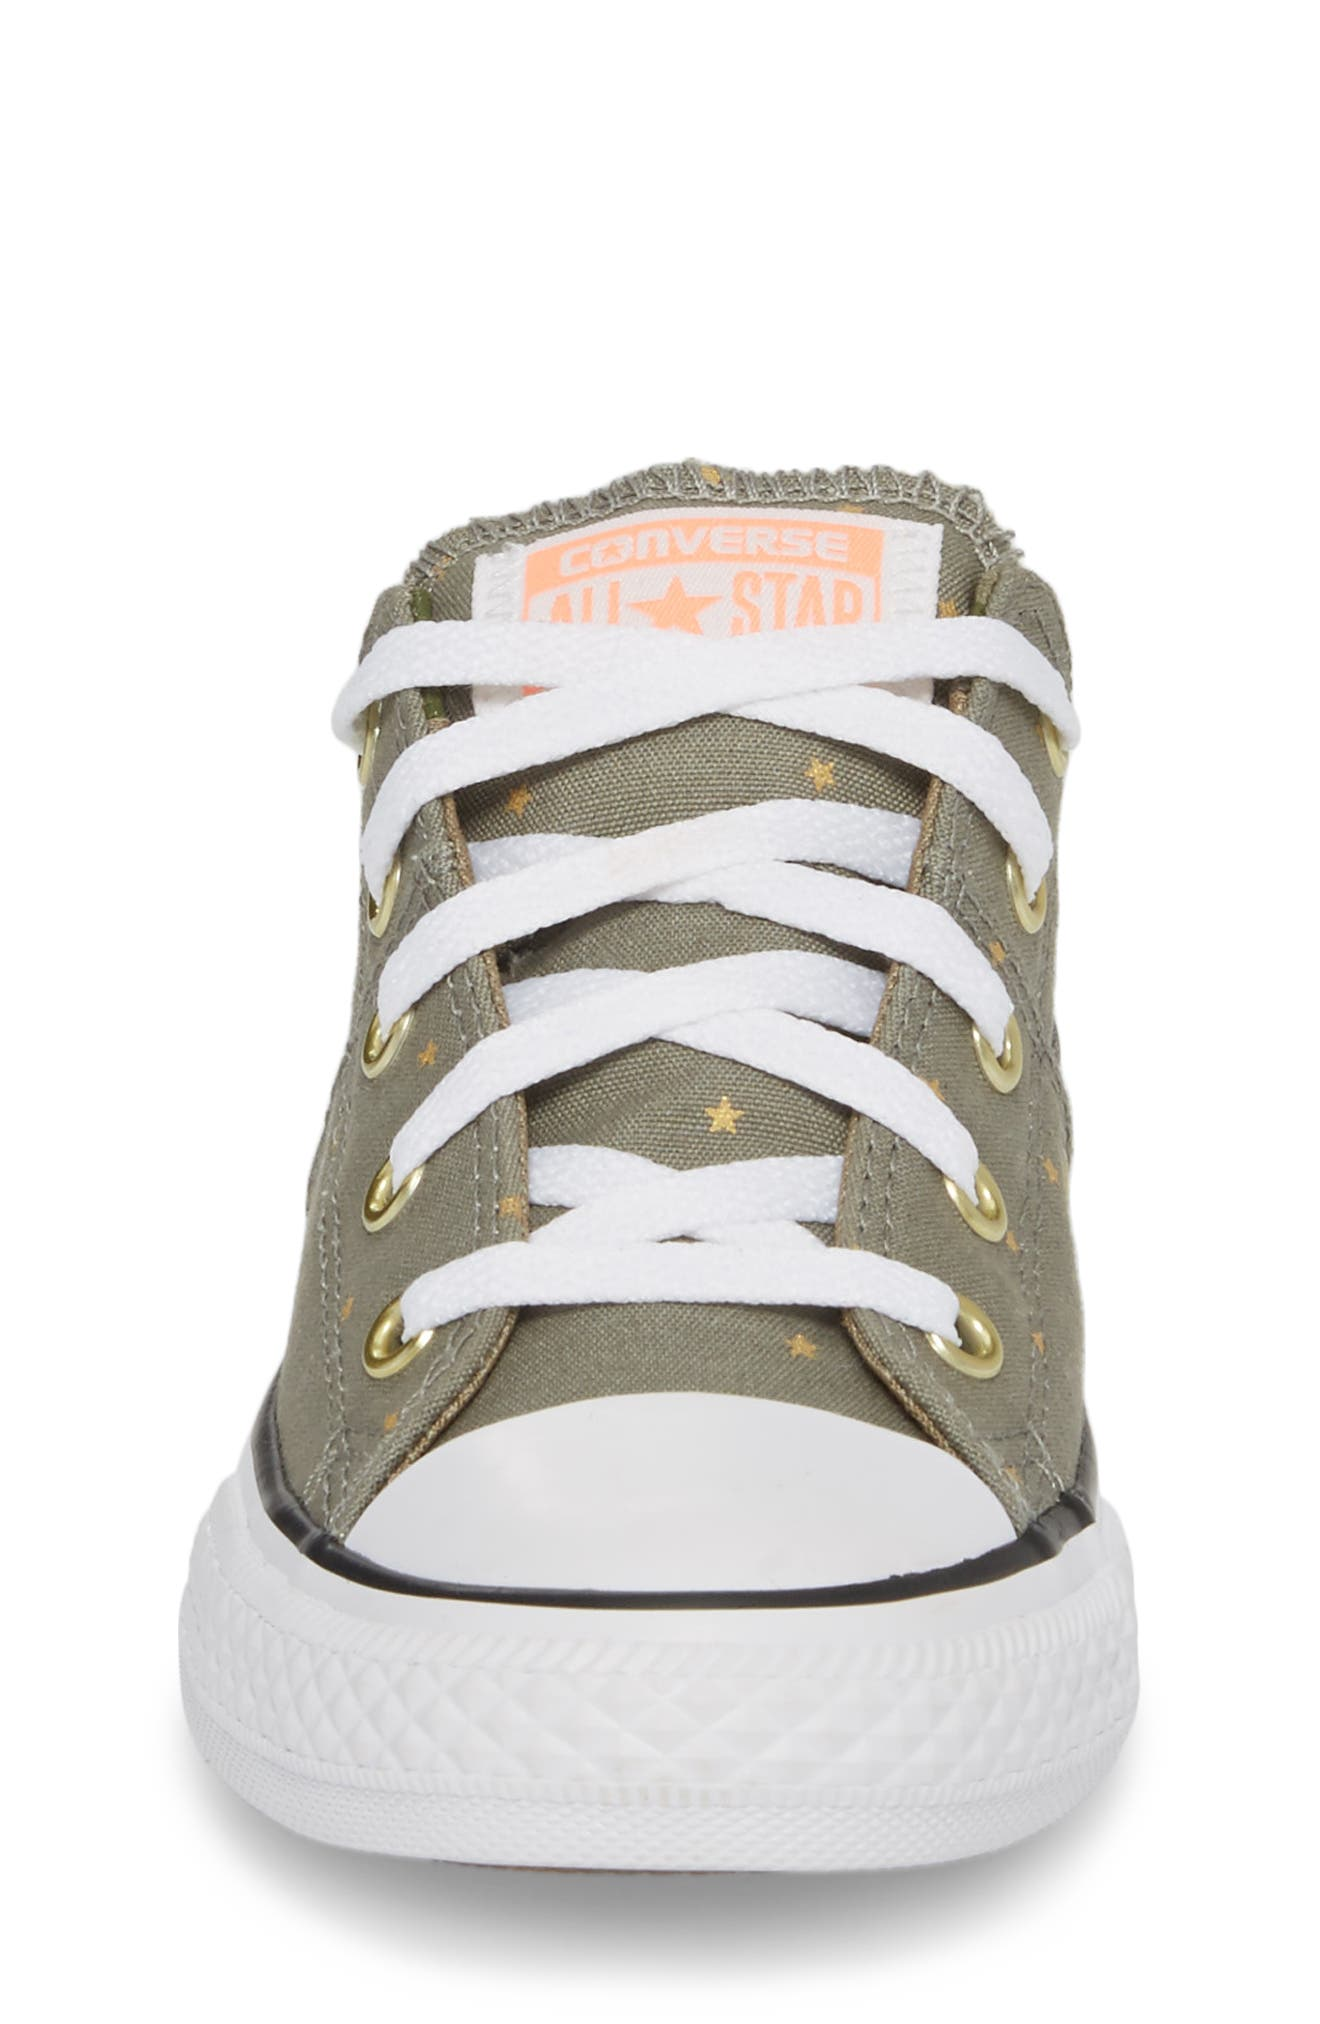 All Star<sup>®</sup> Madison Patterned Low Top Sneaker,                             Alternate thumbnail 4, color,                             022